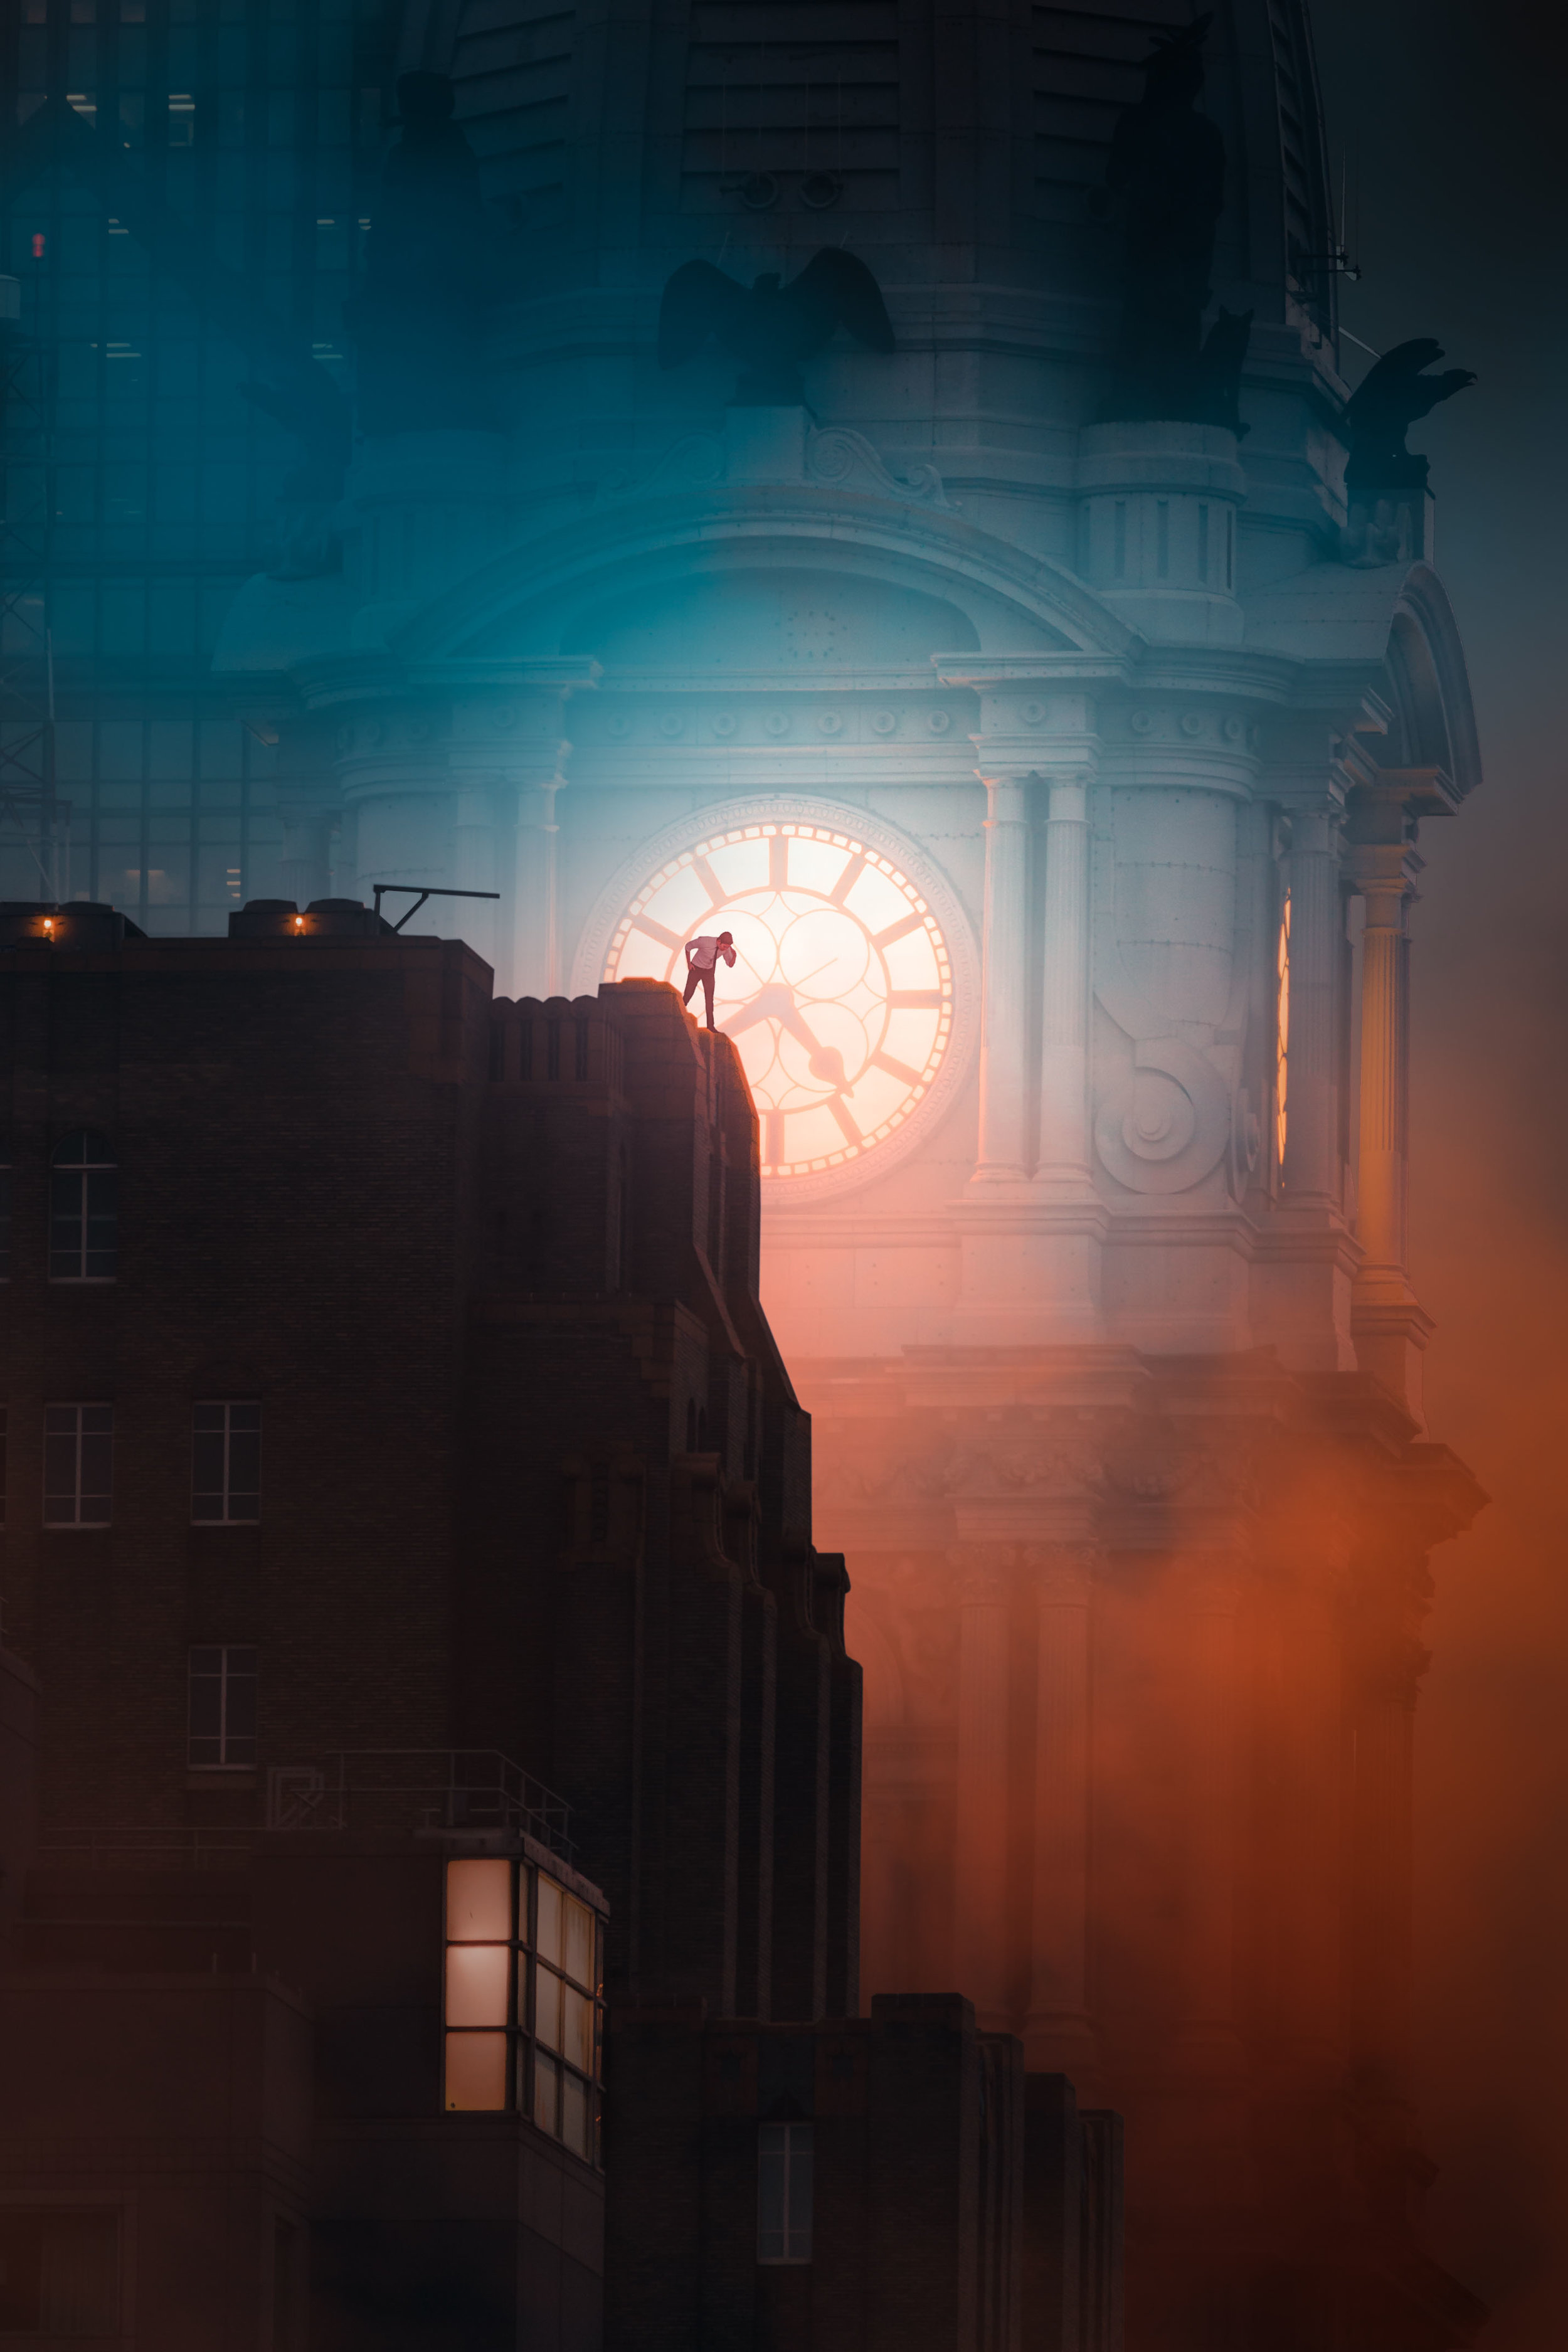 Fantasy Image of the clock tower of Philadelphia City Hall - Hythacg